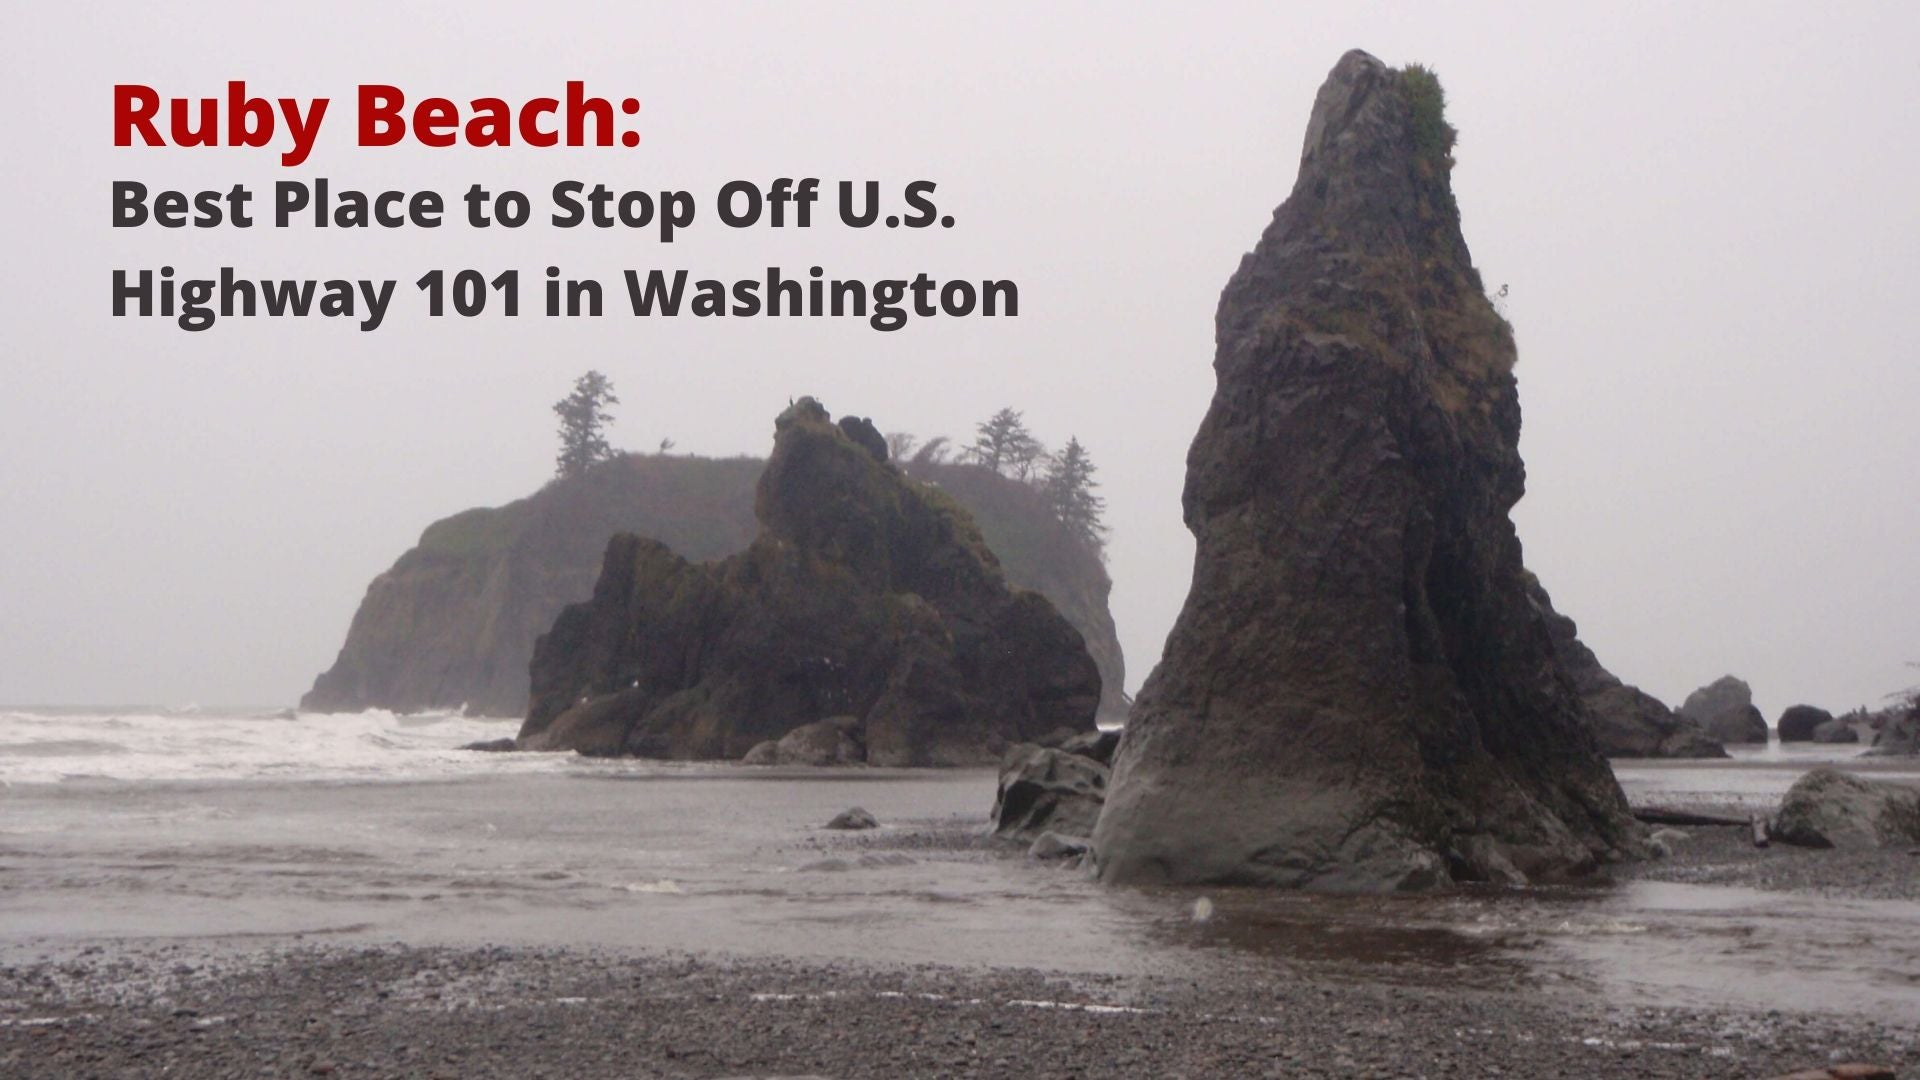 Ruby Beach: Best Place to Stop Off U.S. Hwy 101 in Washington